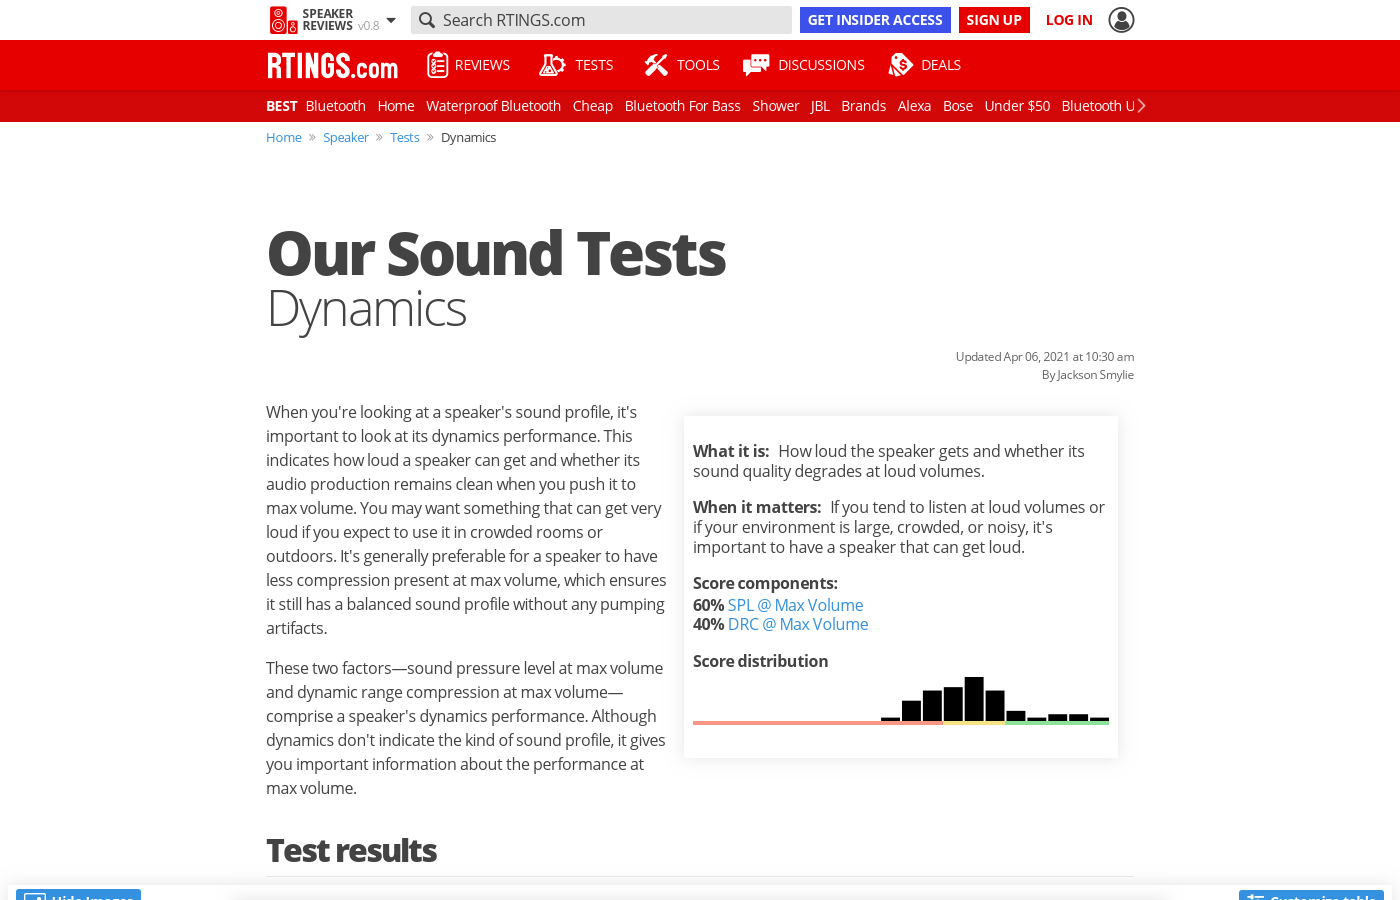 Test Article: Dynamics